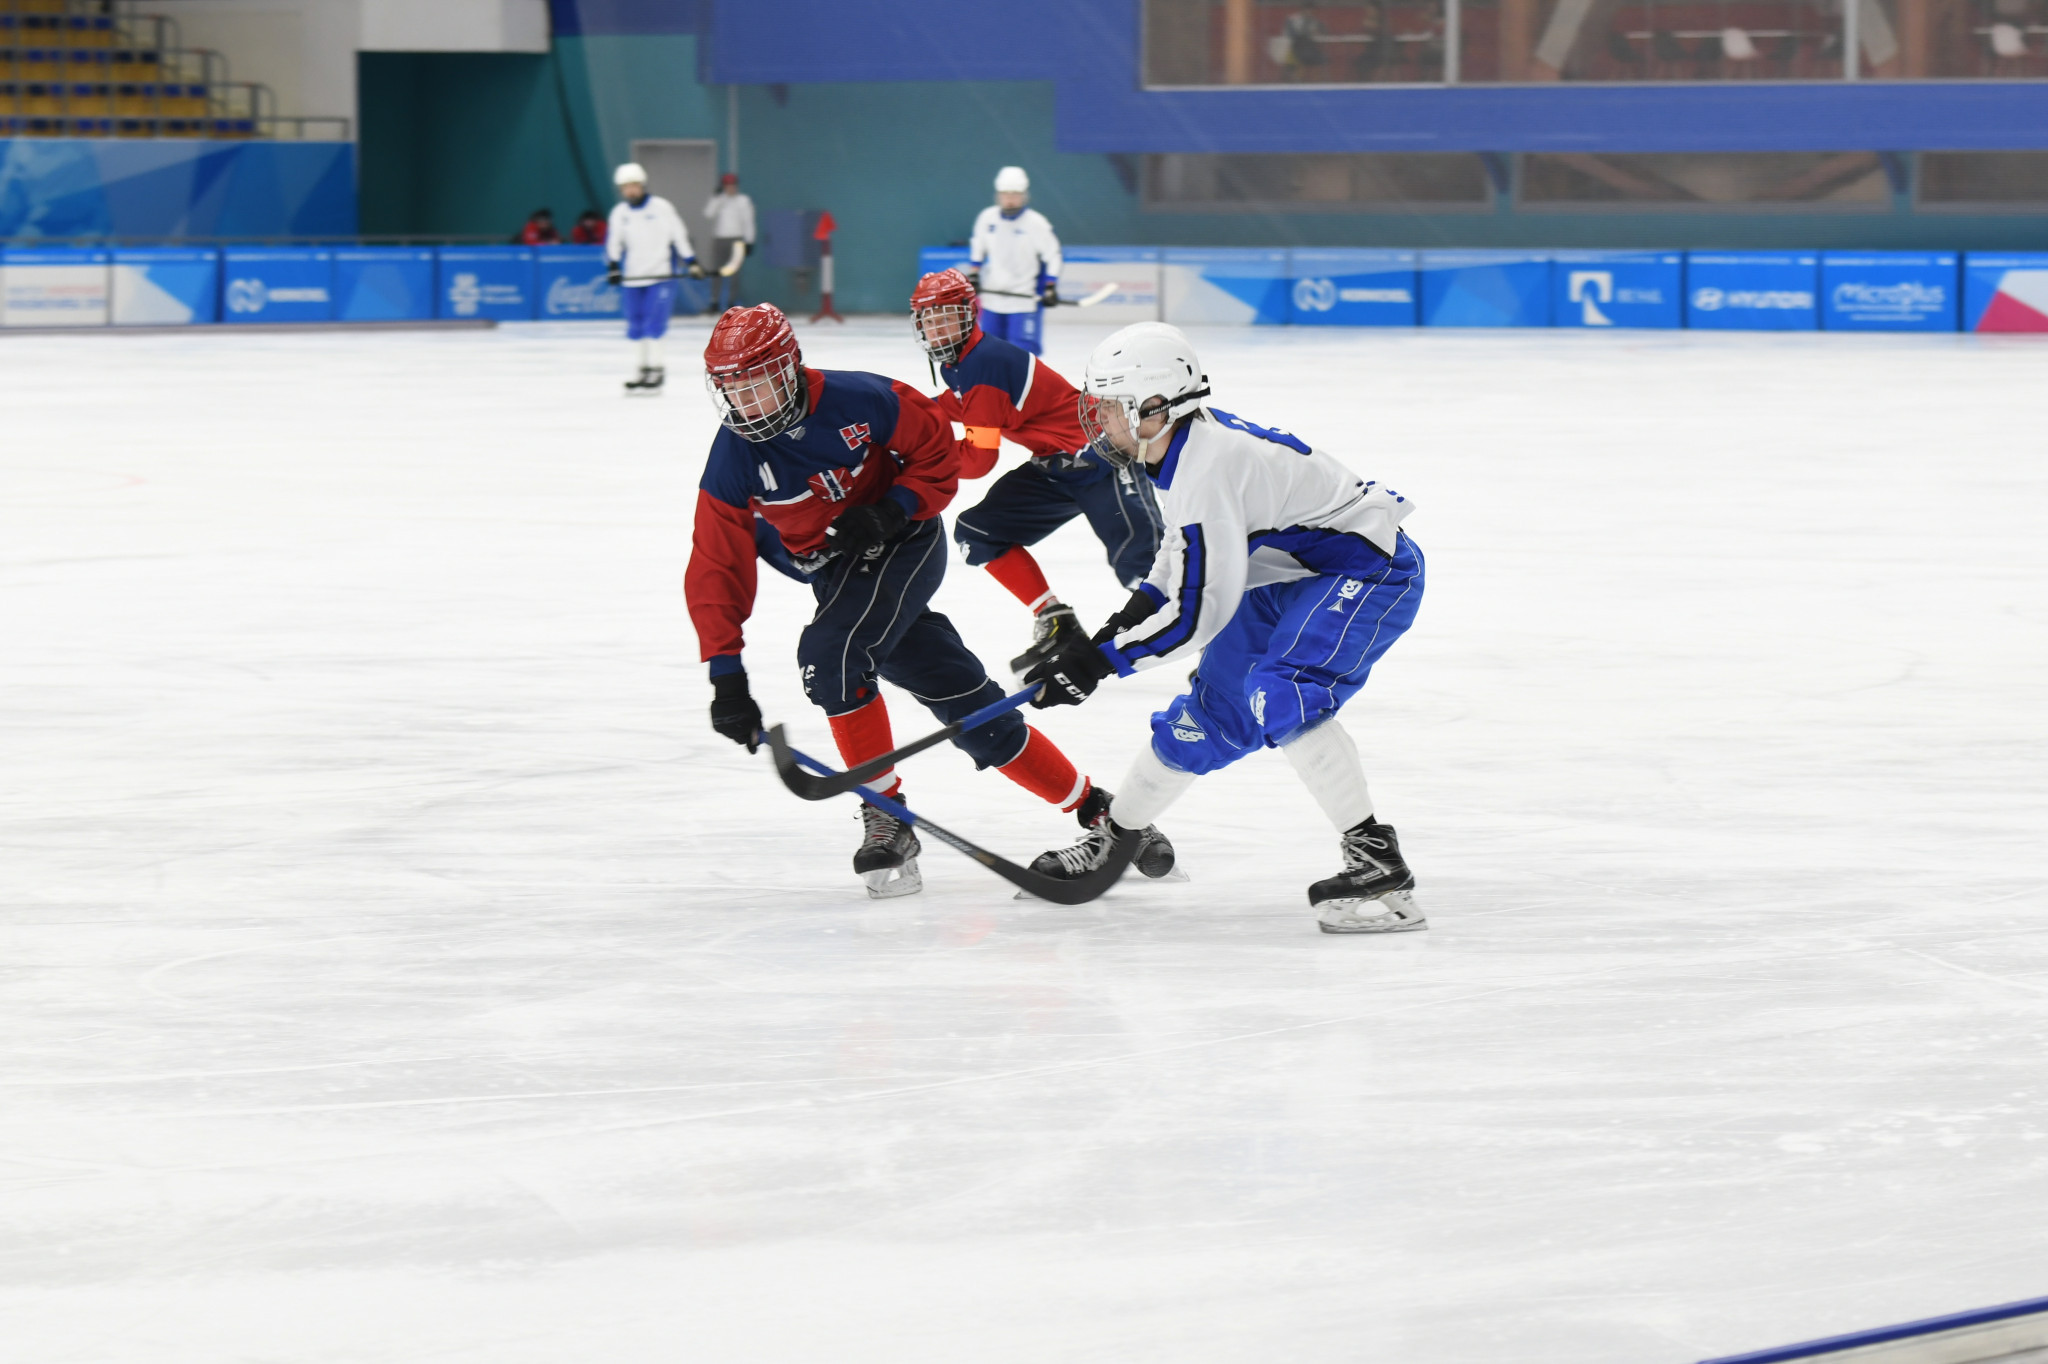 The competition took place at the Yenisei Ice Stadium ©Krasnoyarsk 2019